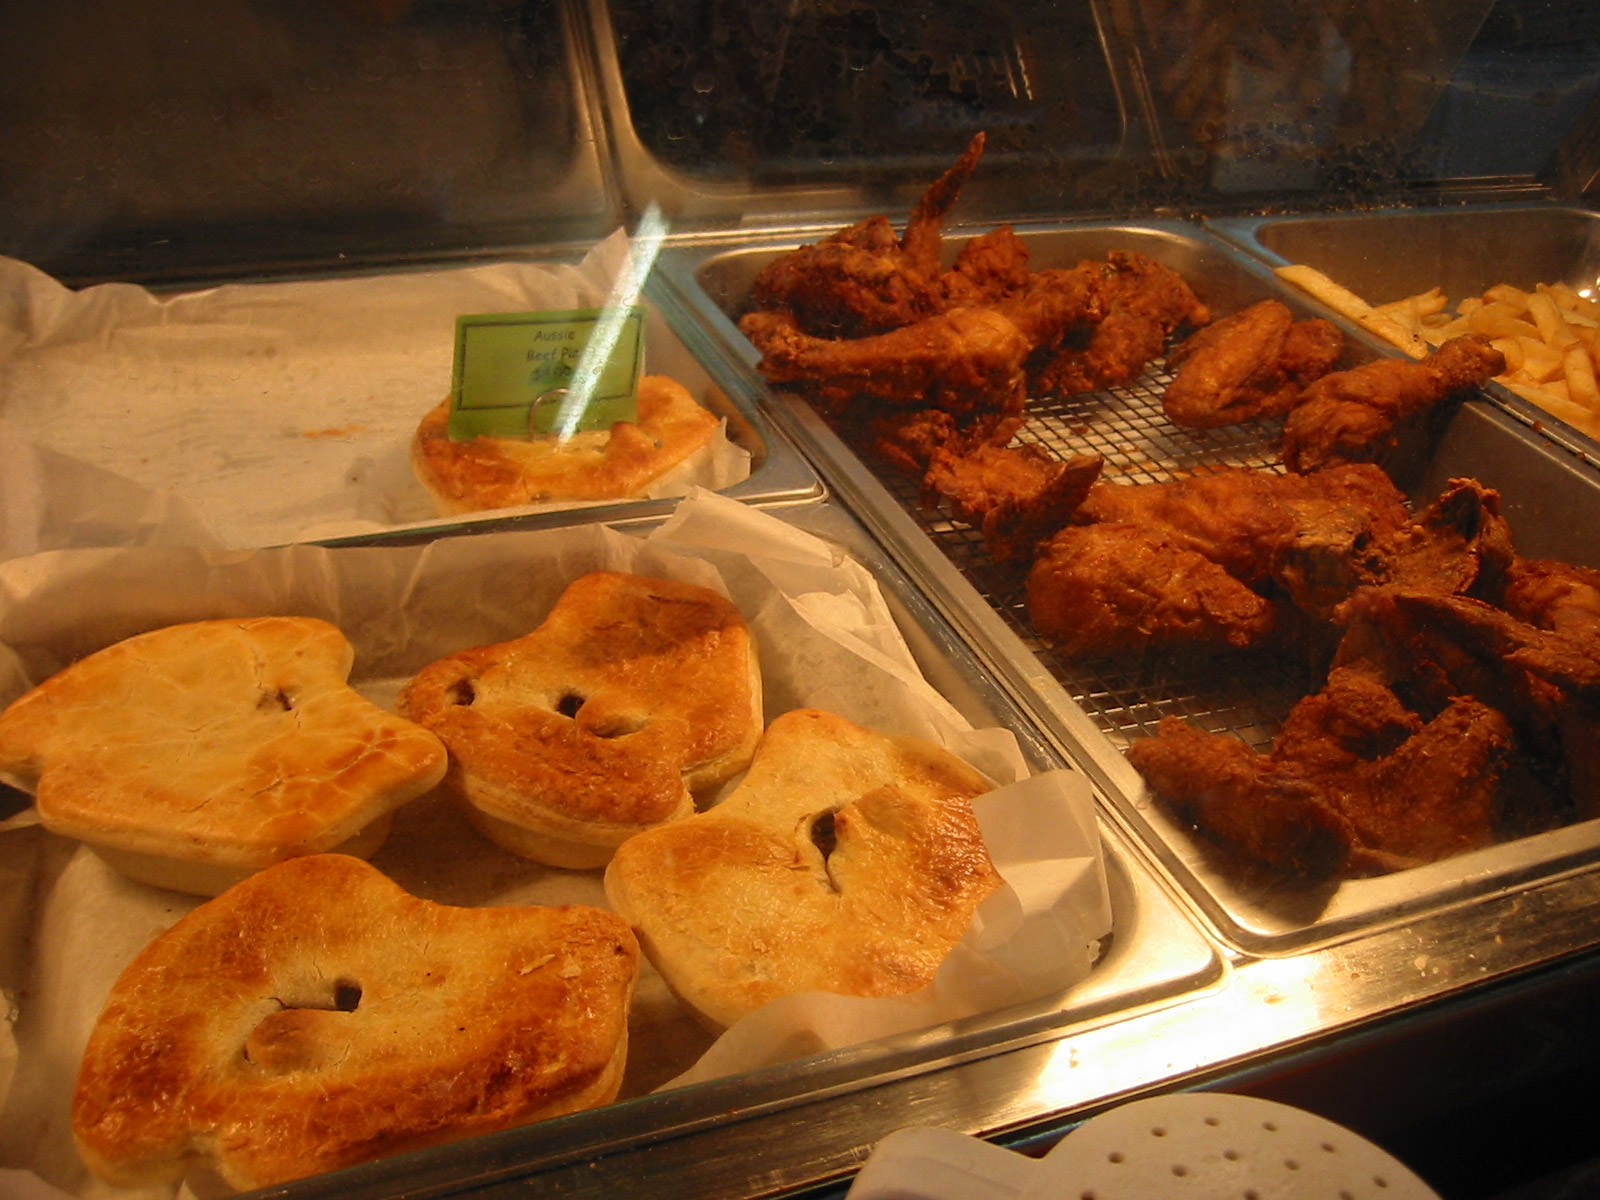 Aussie meat pies and Country Fried Chicken